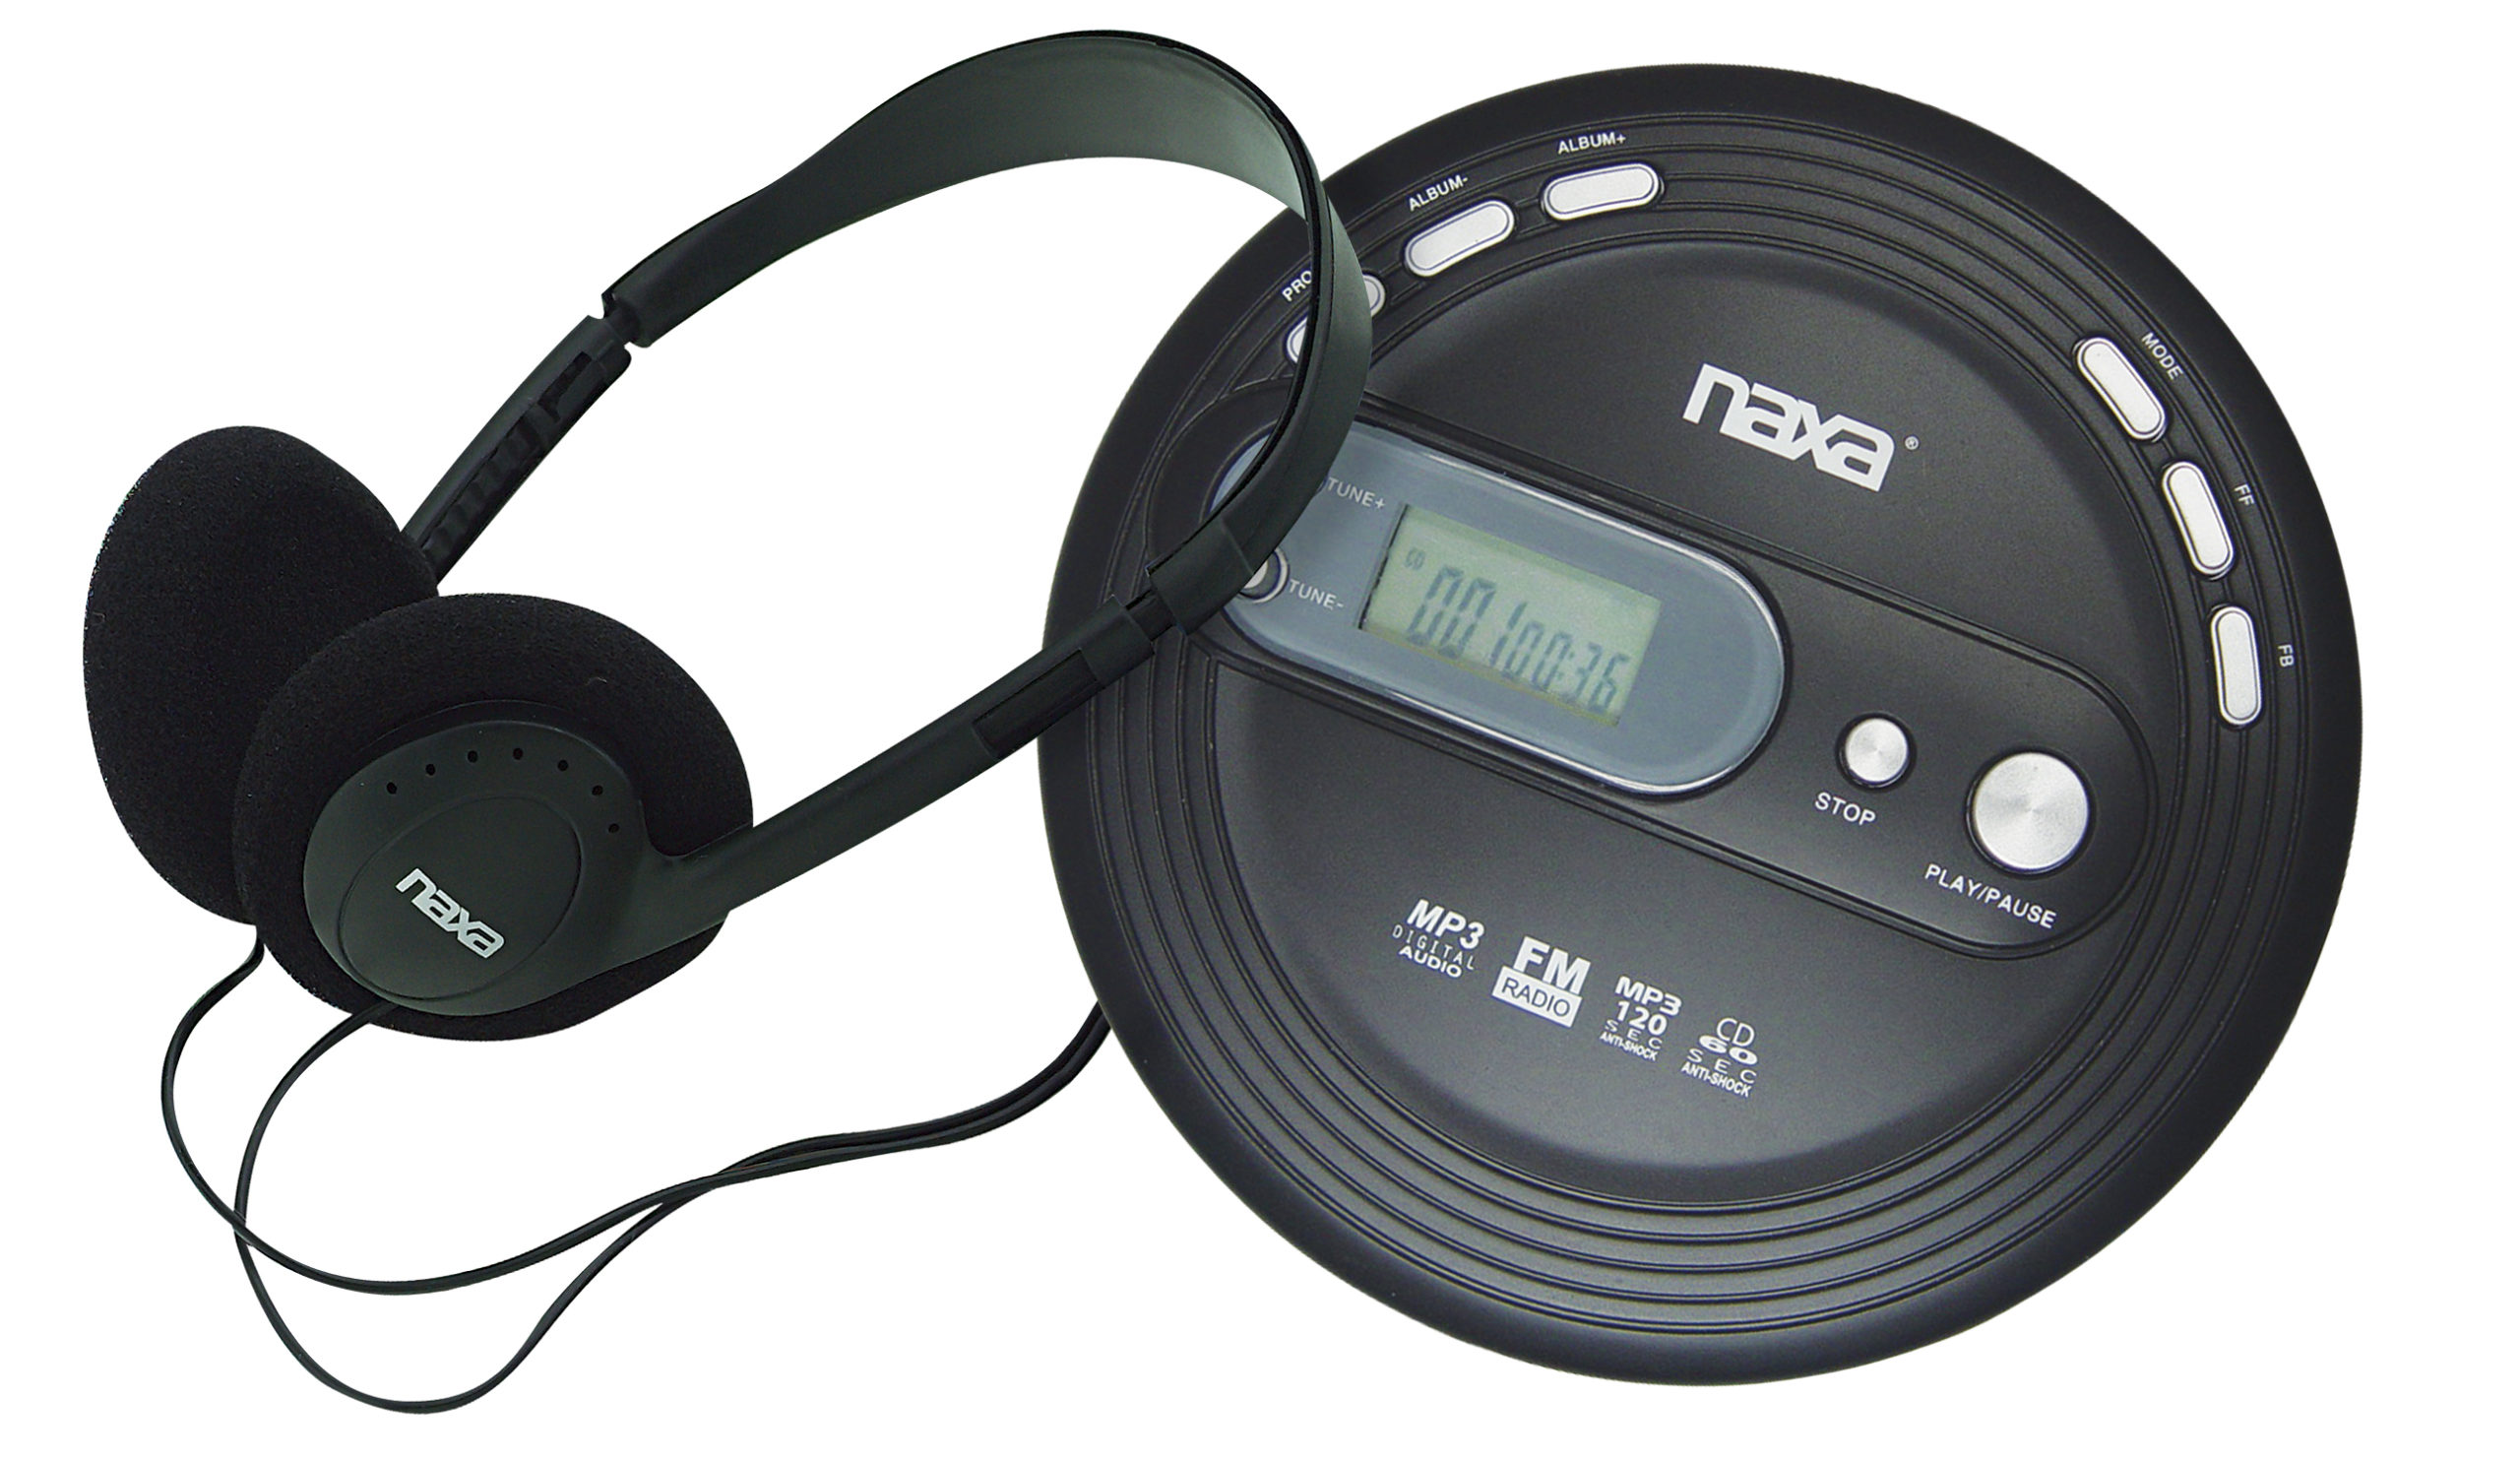 Slim Personal MP3/CD Player with 120 Second Anti-Shock & FM Scan Radio